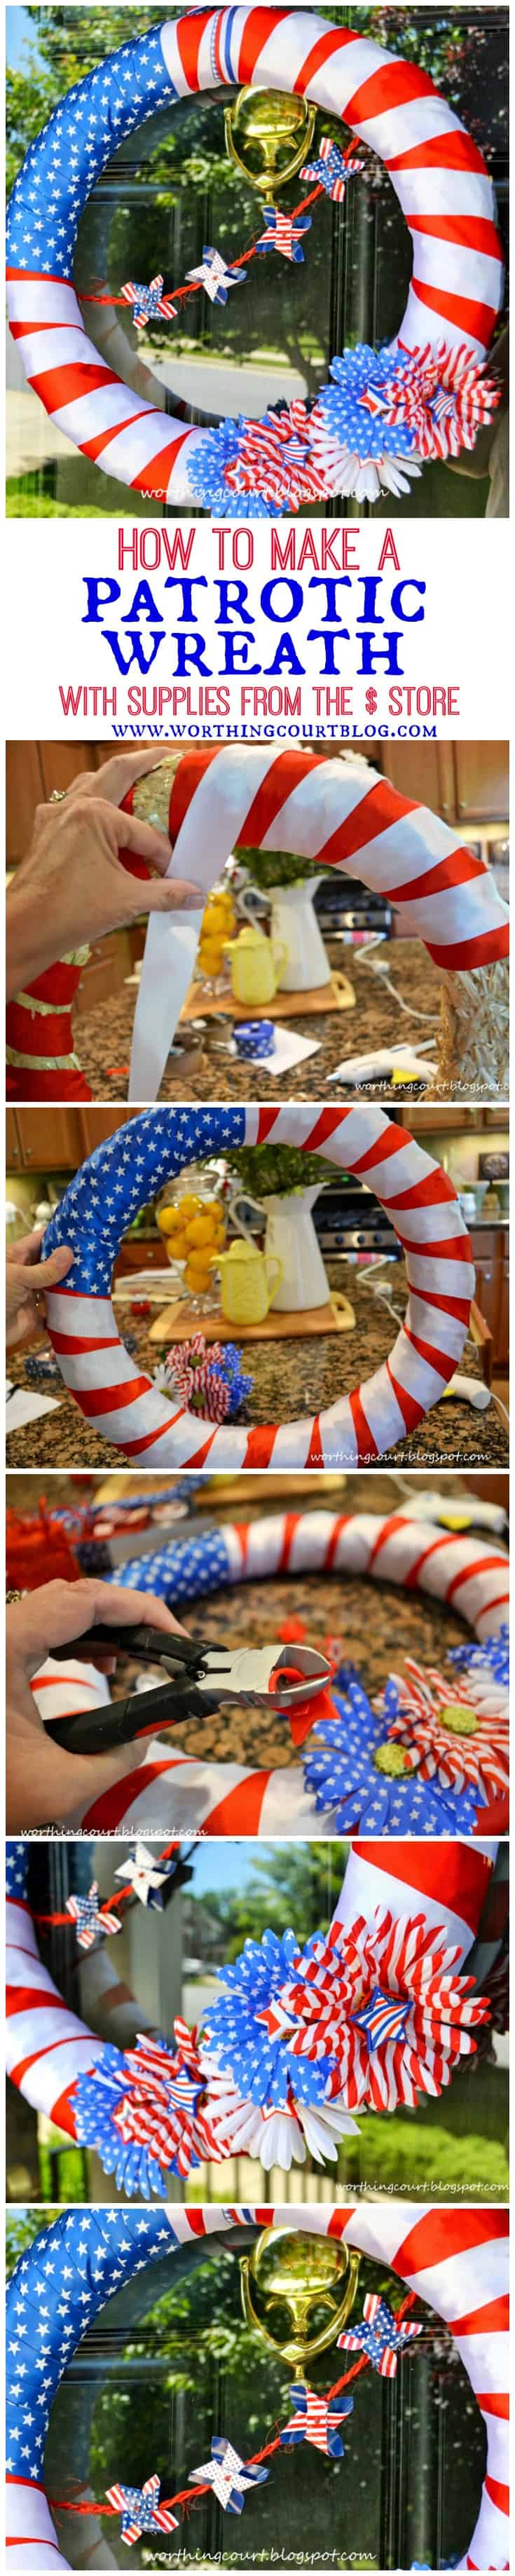 Step-by-step directions for making a patriotic wreath for Memorial Day, Flag Day and July 4th using supplies from the dollar store.